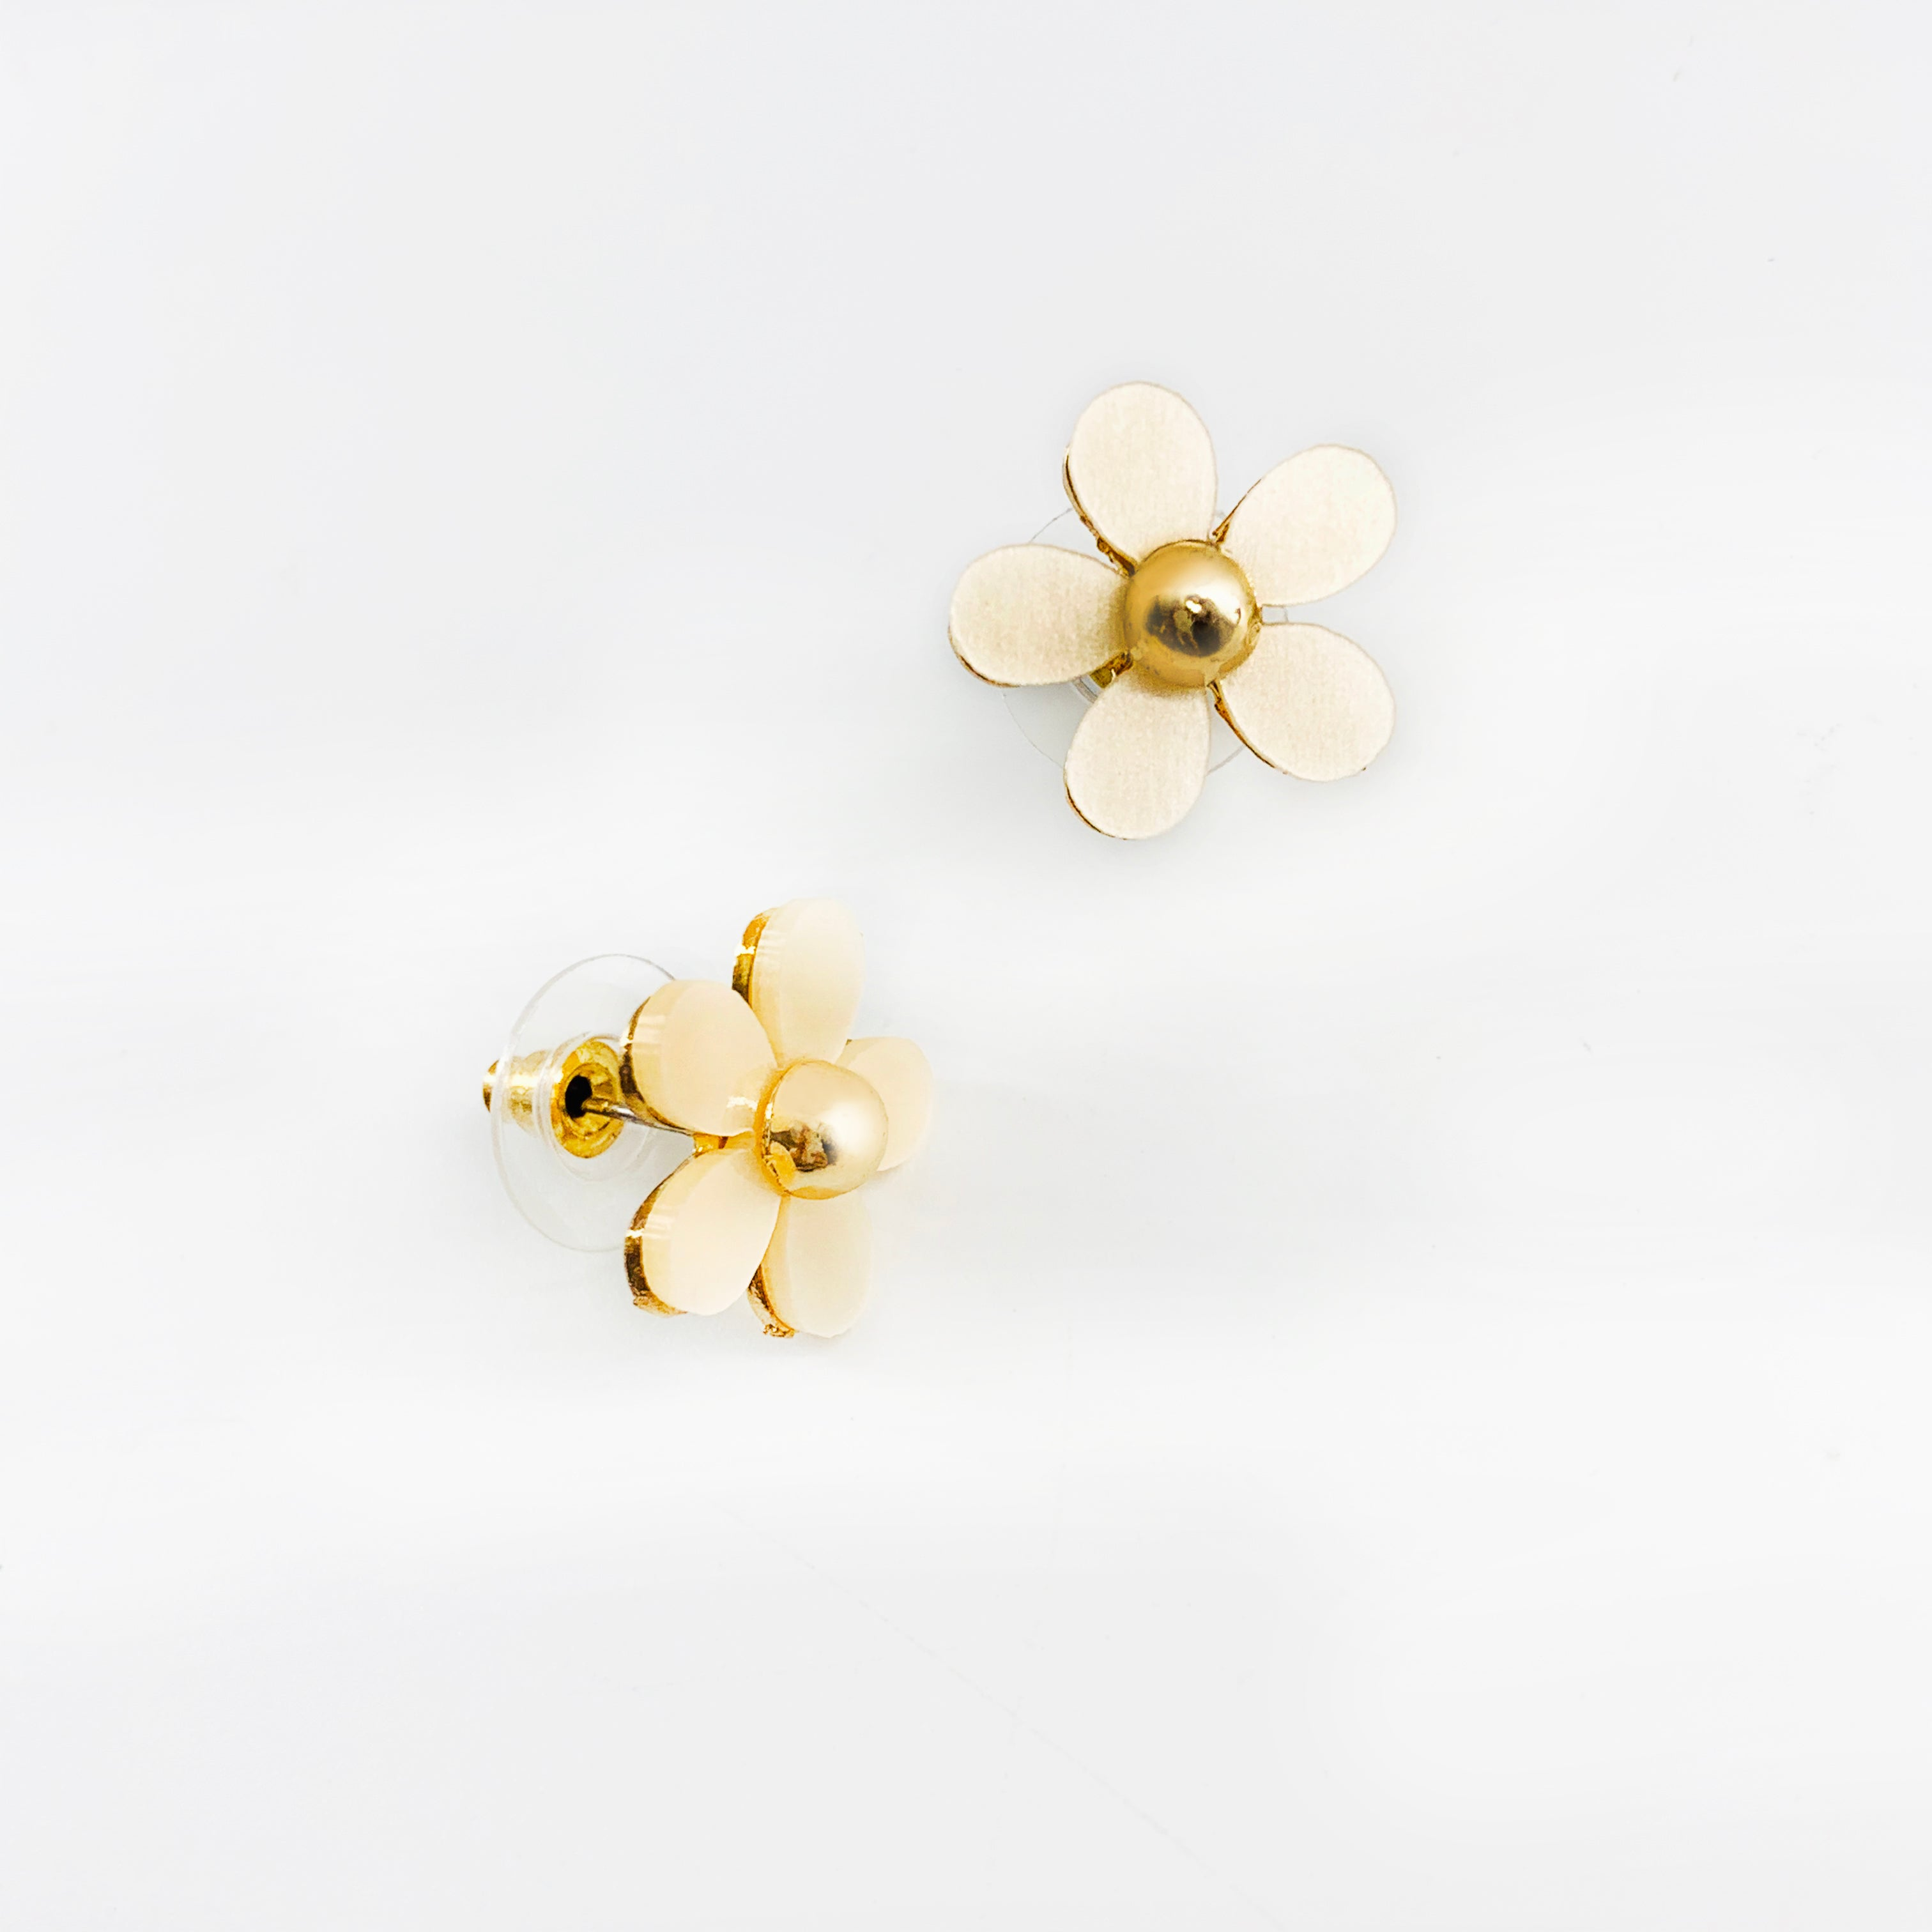 Nude daisy flower gold earrings